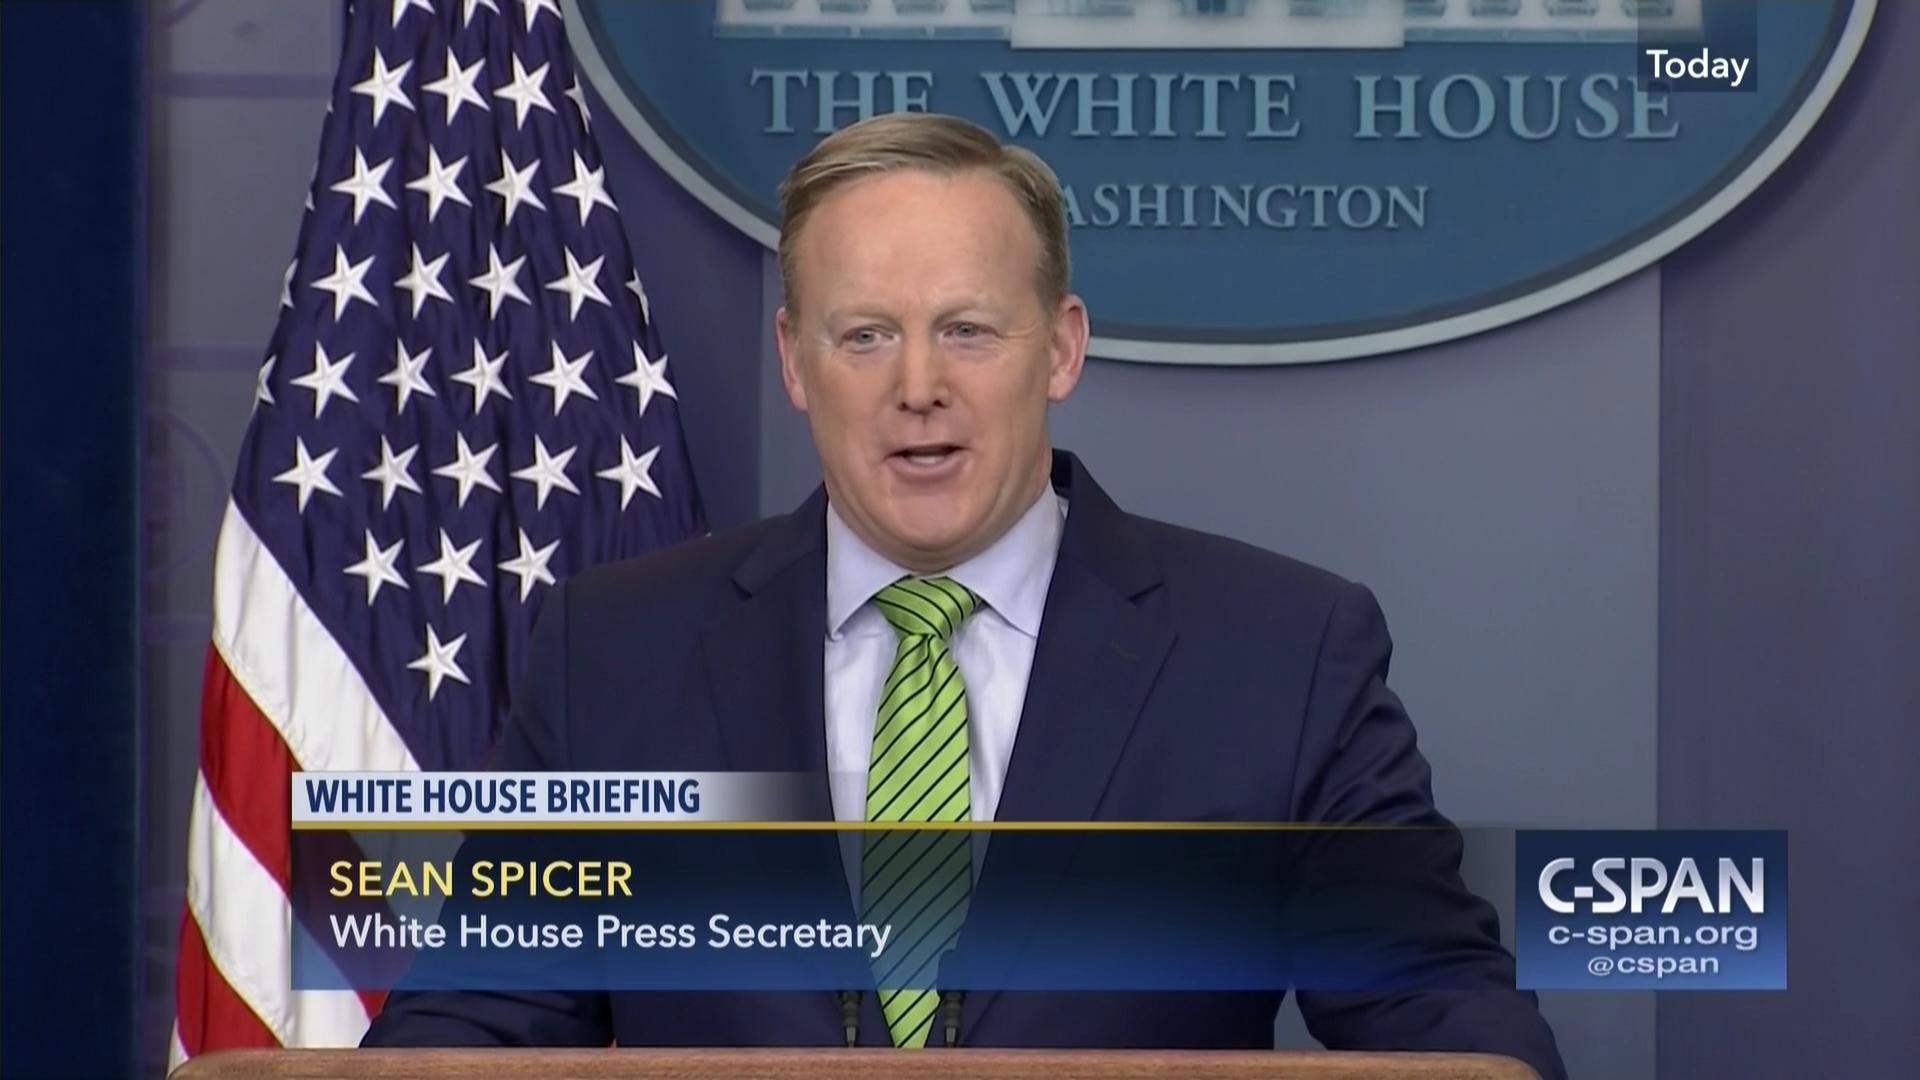 sean spicer says us easing sanctions russia, feb 2 2017 | c-span